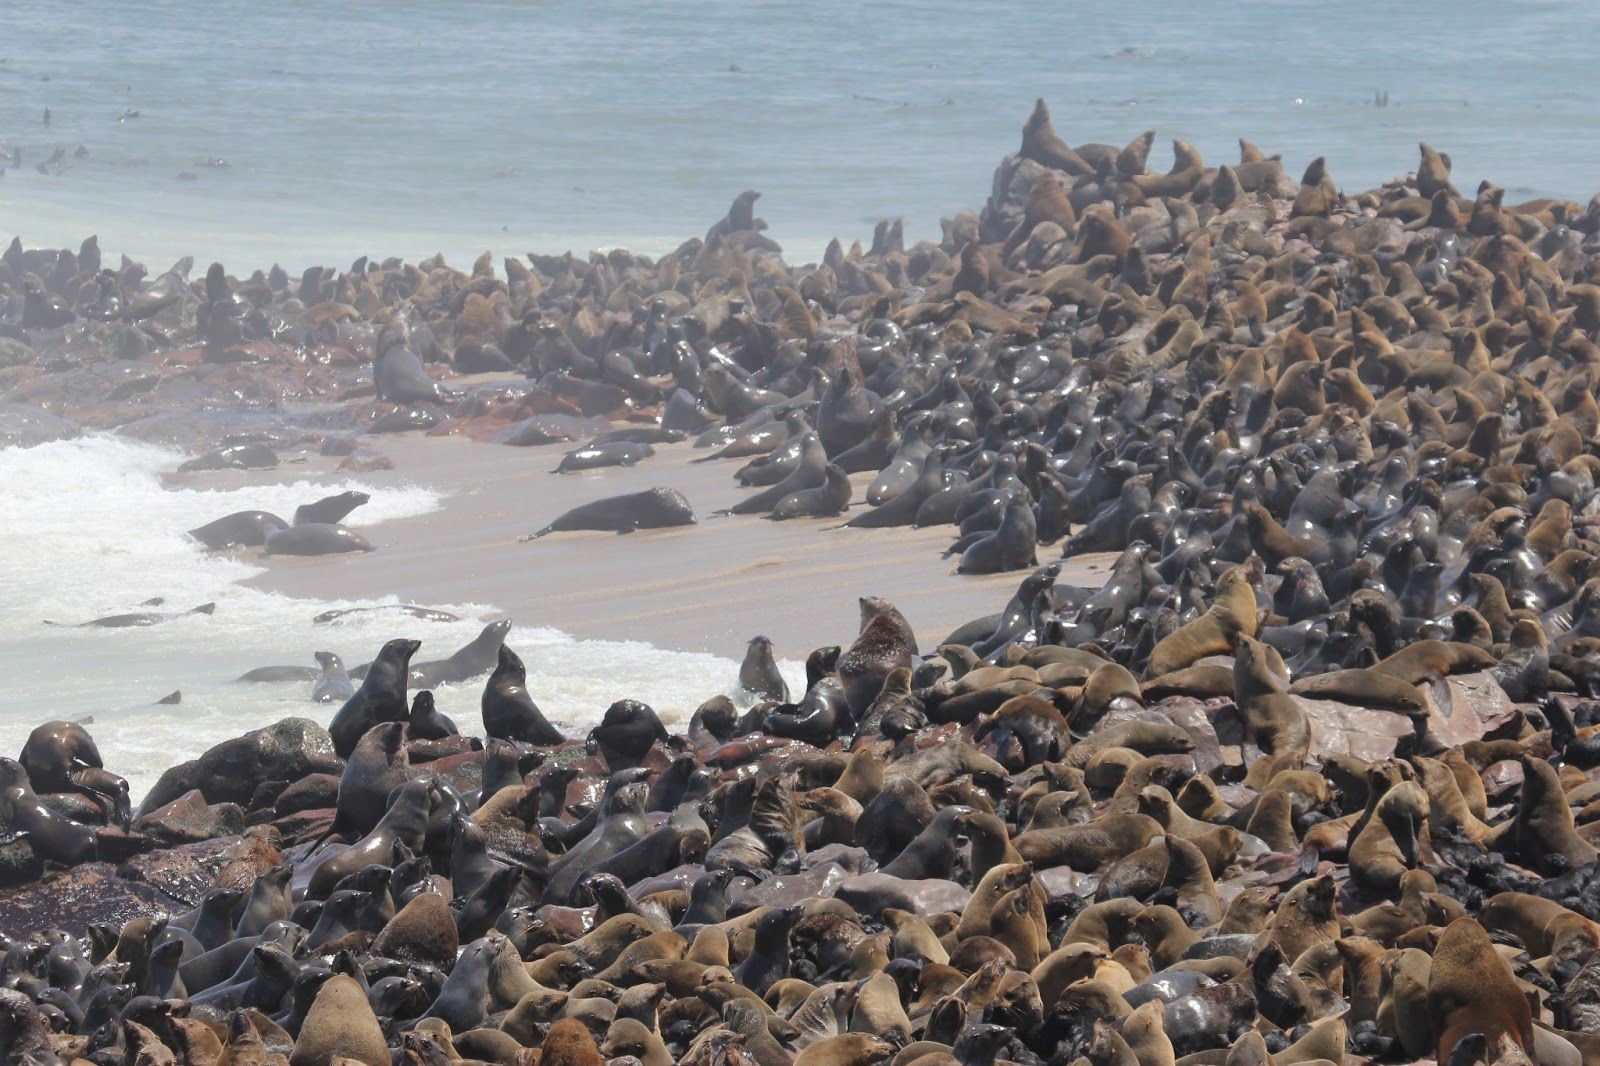 the cape fur seal colony of cape cross near swakopmund in namibia migrations pinterest. Black Bedroom Furniture Sets. Home Design Ideas